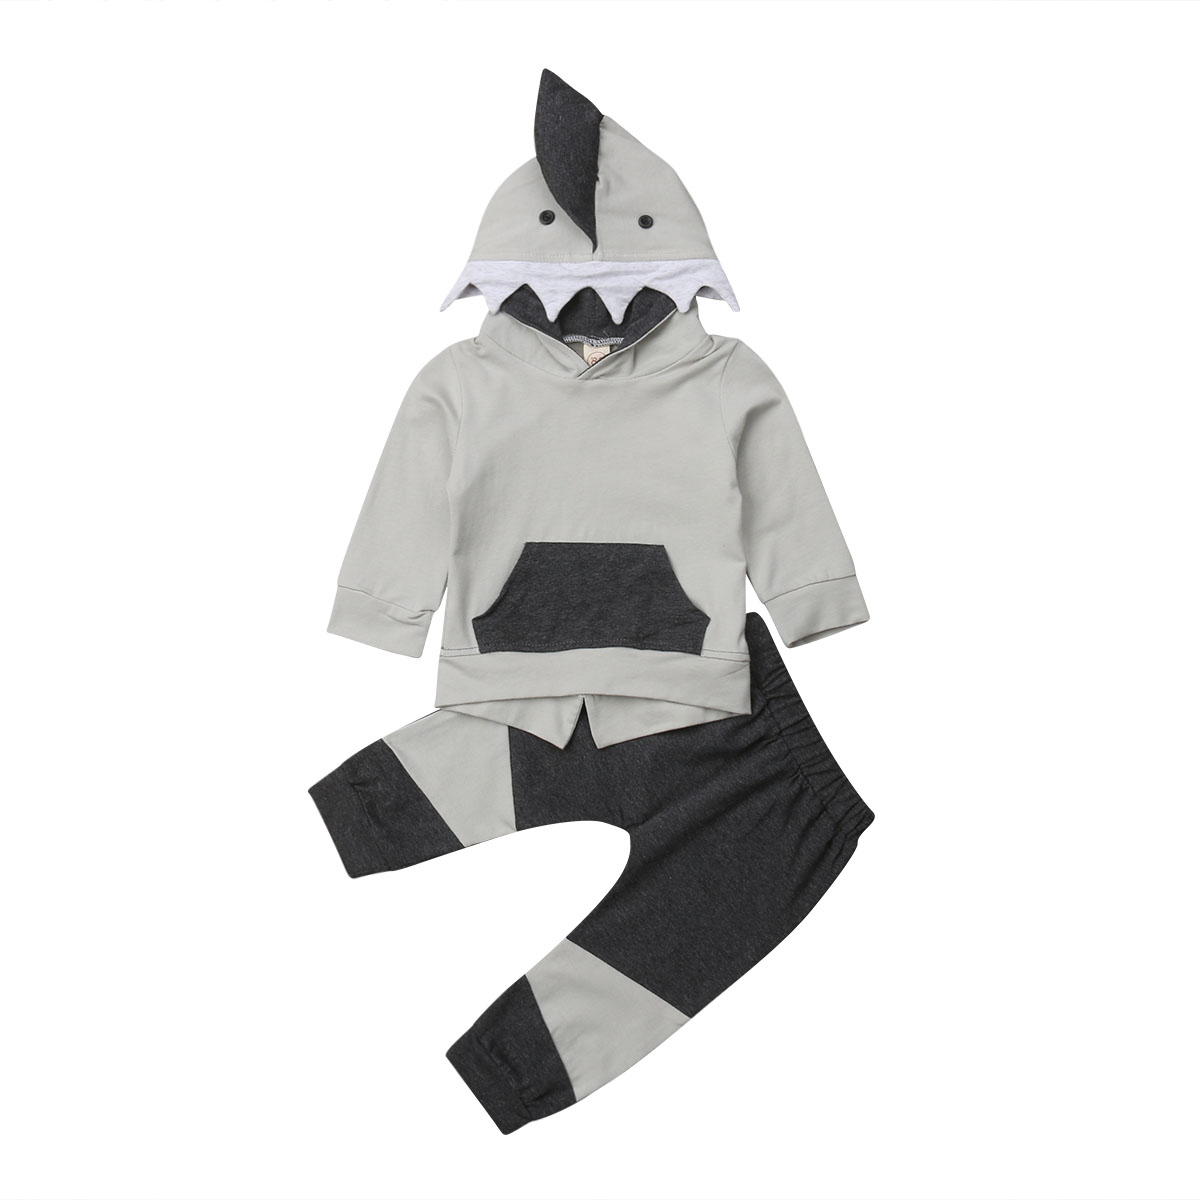 NWT Shark Boys Hooded Sweat Shirt /& Pants Outfit Set 12 18 M 2T 3T 4T